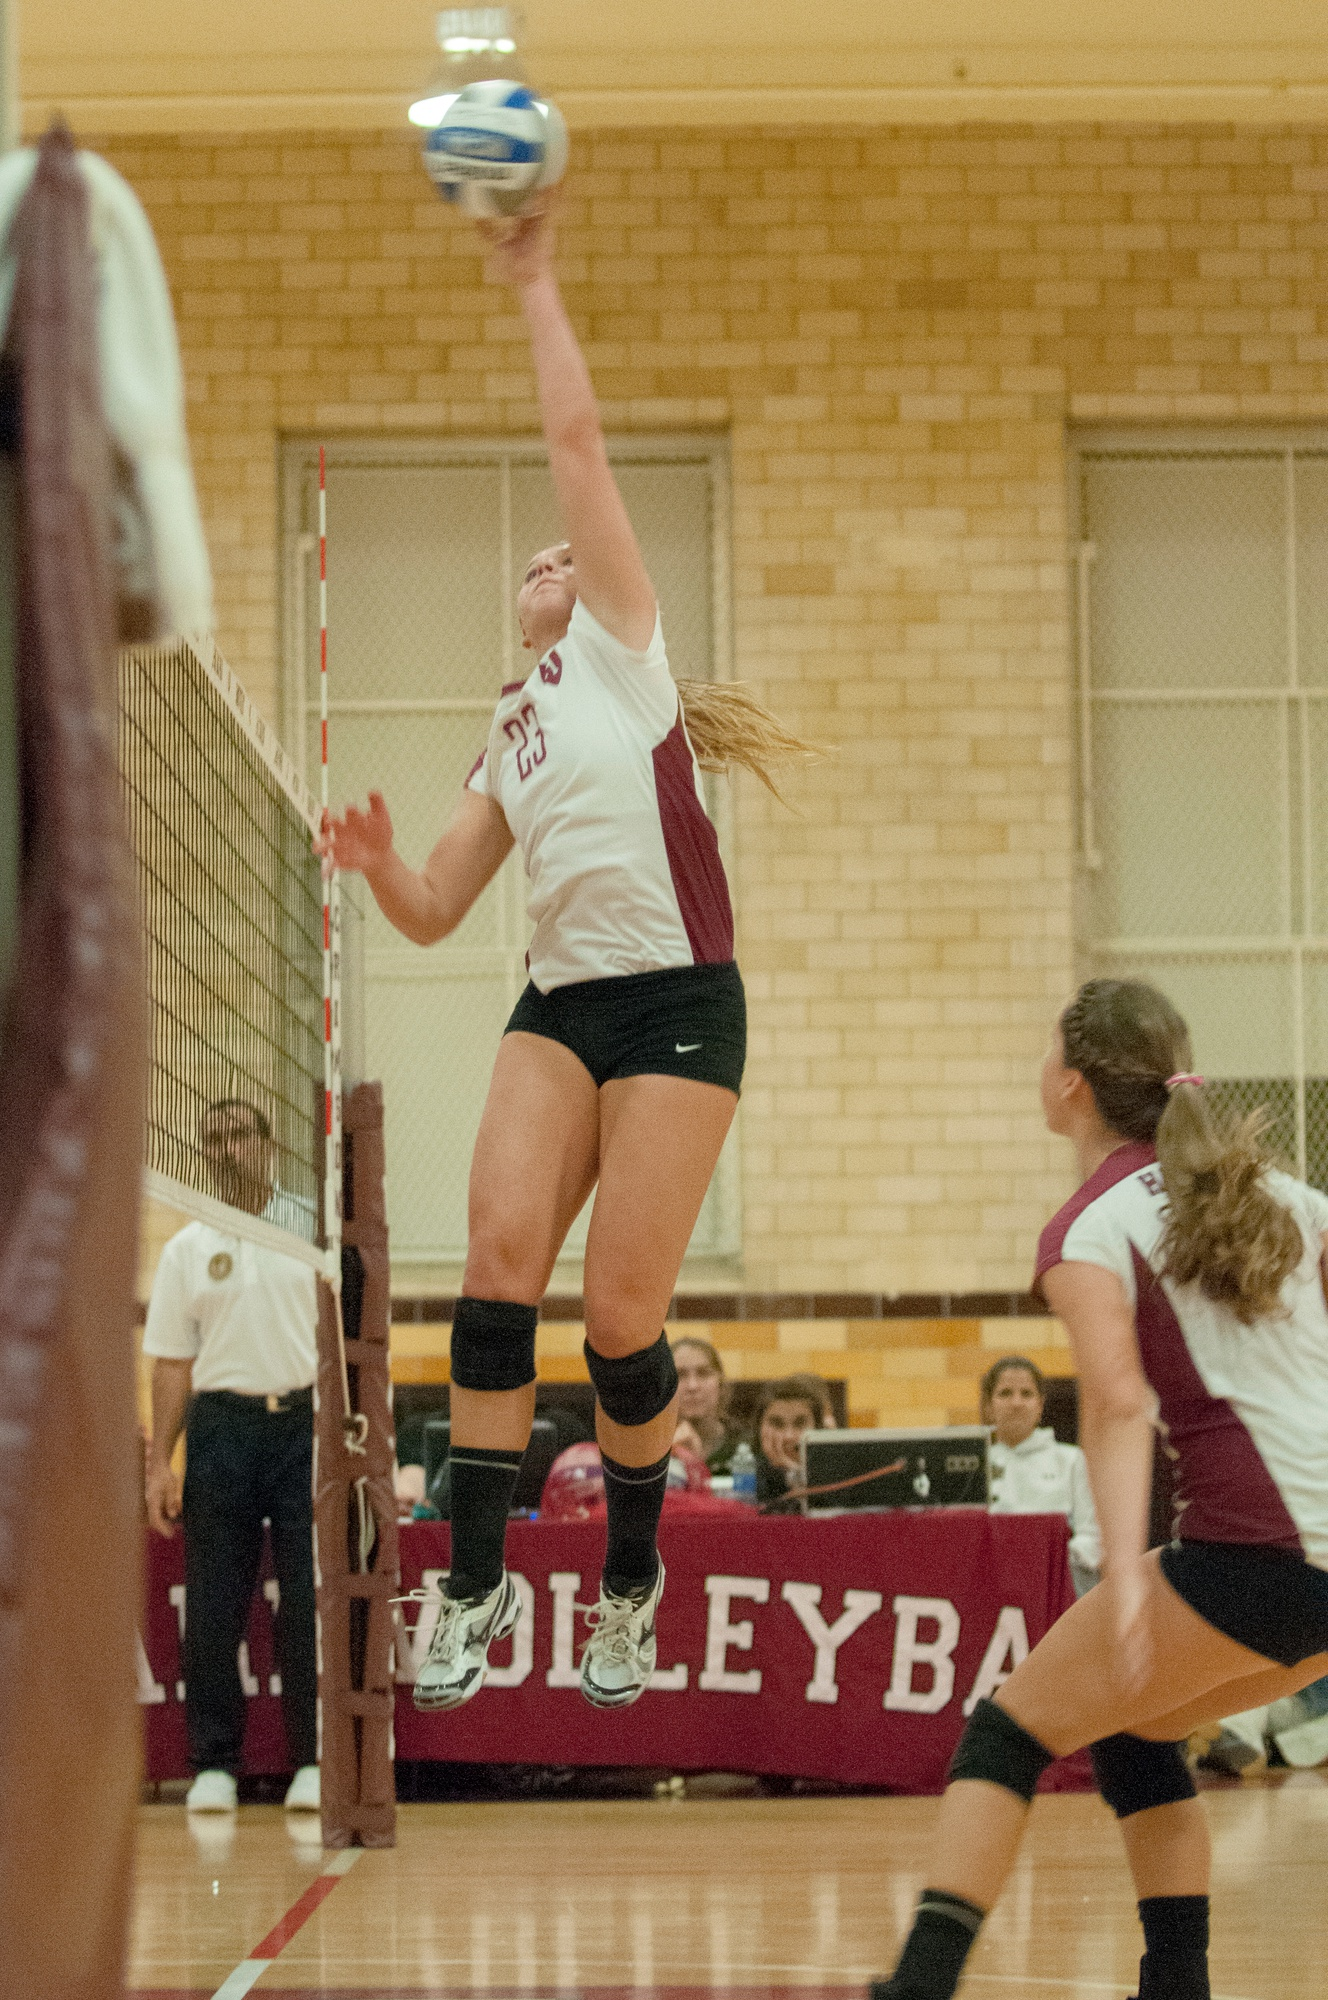 Freshman Corinne Bain put the finishing touches on a stellar rookie  campaign in which she became the first Harvard women's volleyball player to register a triple-double, a feat she accomplished six times.